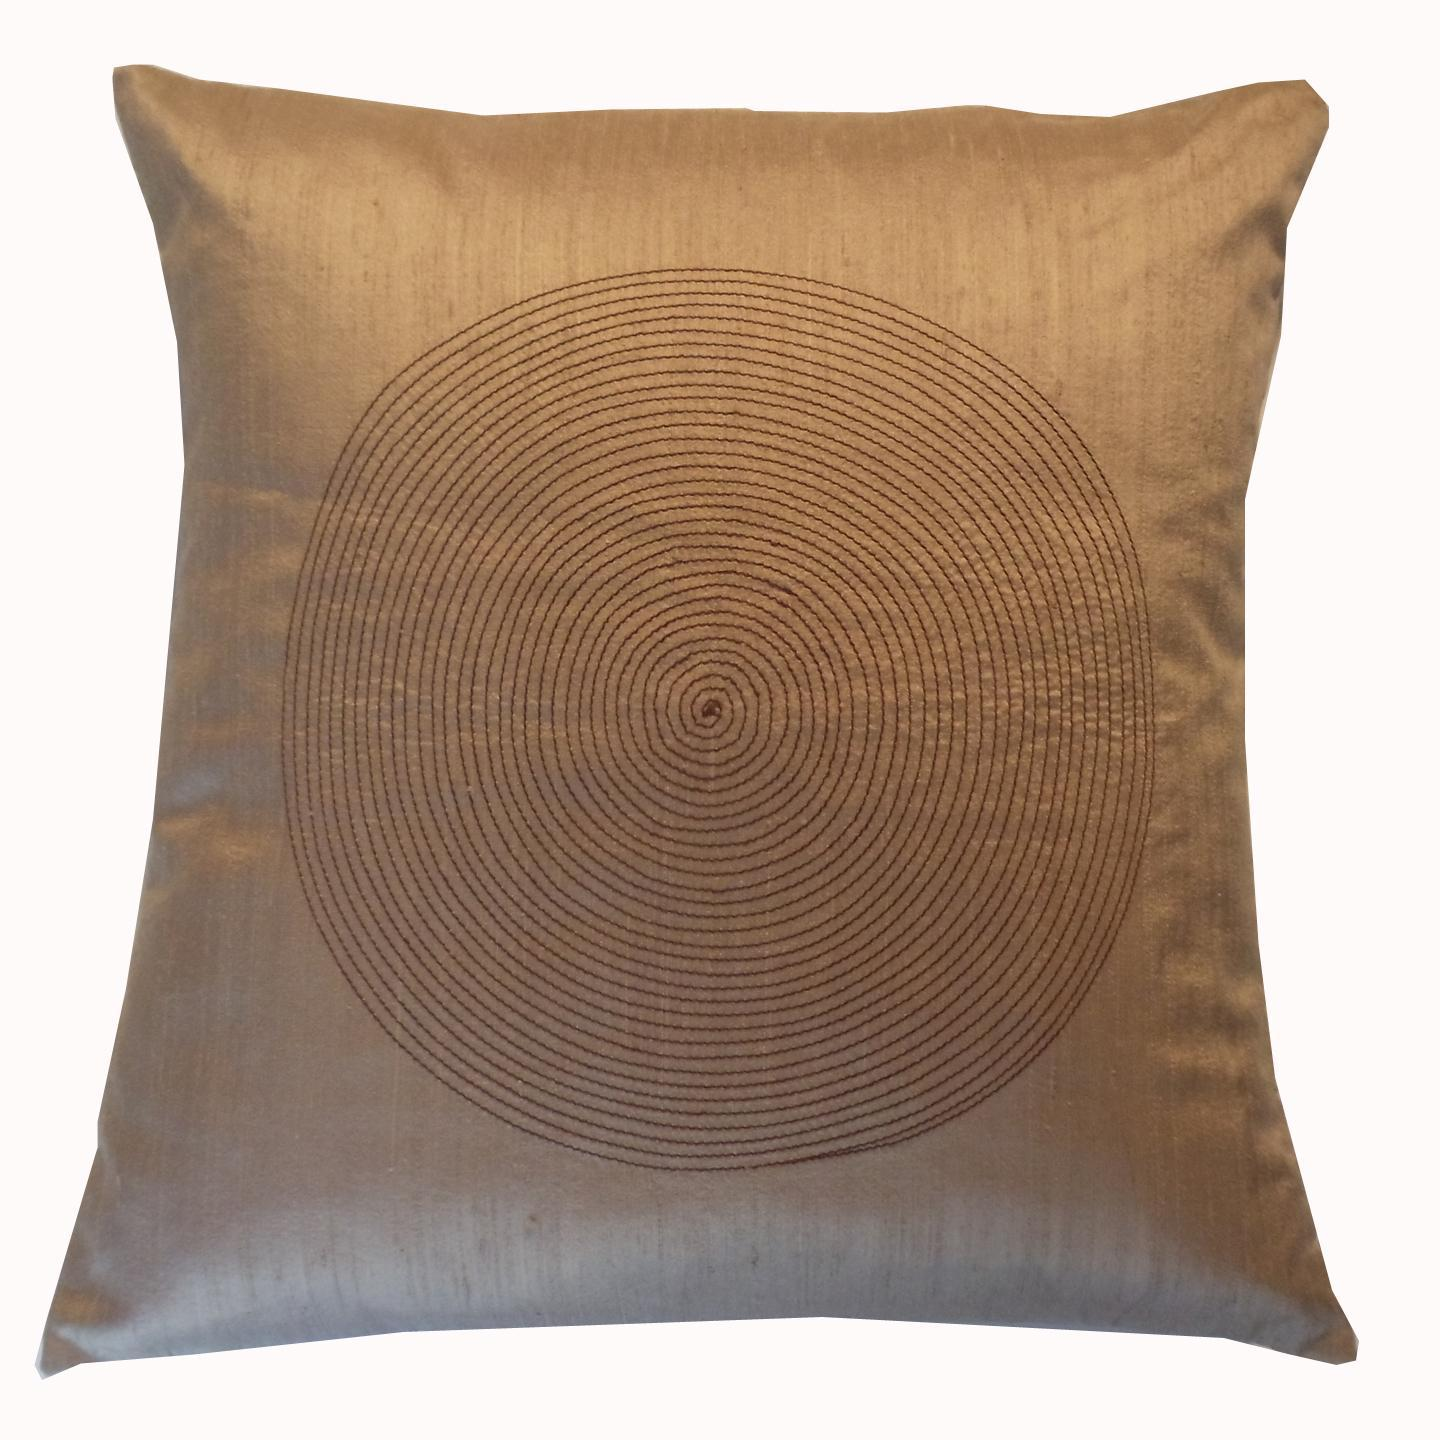 Gold Embroidered Silk Decorative Pillow - Thumbnail 0